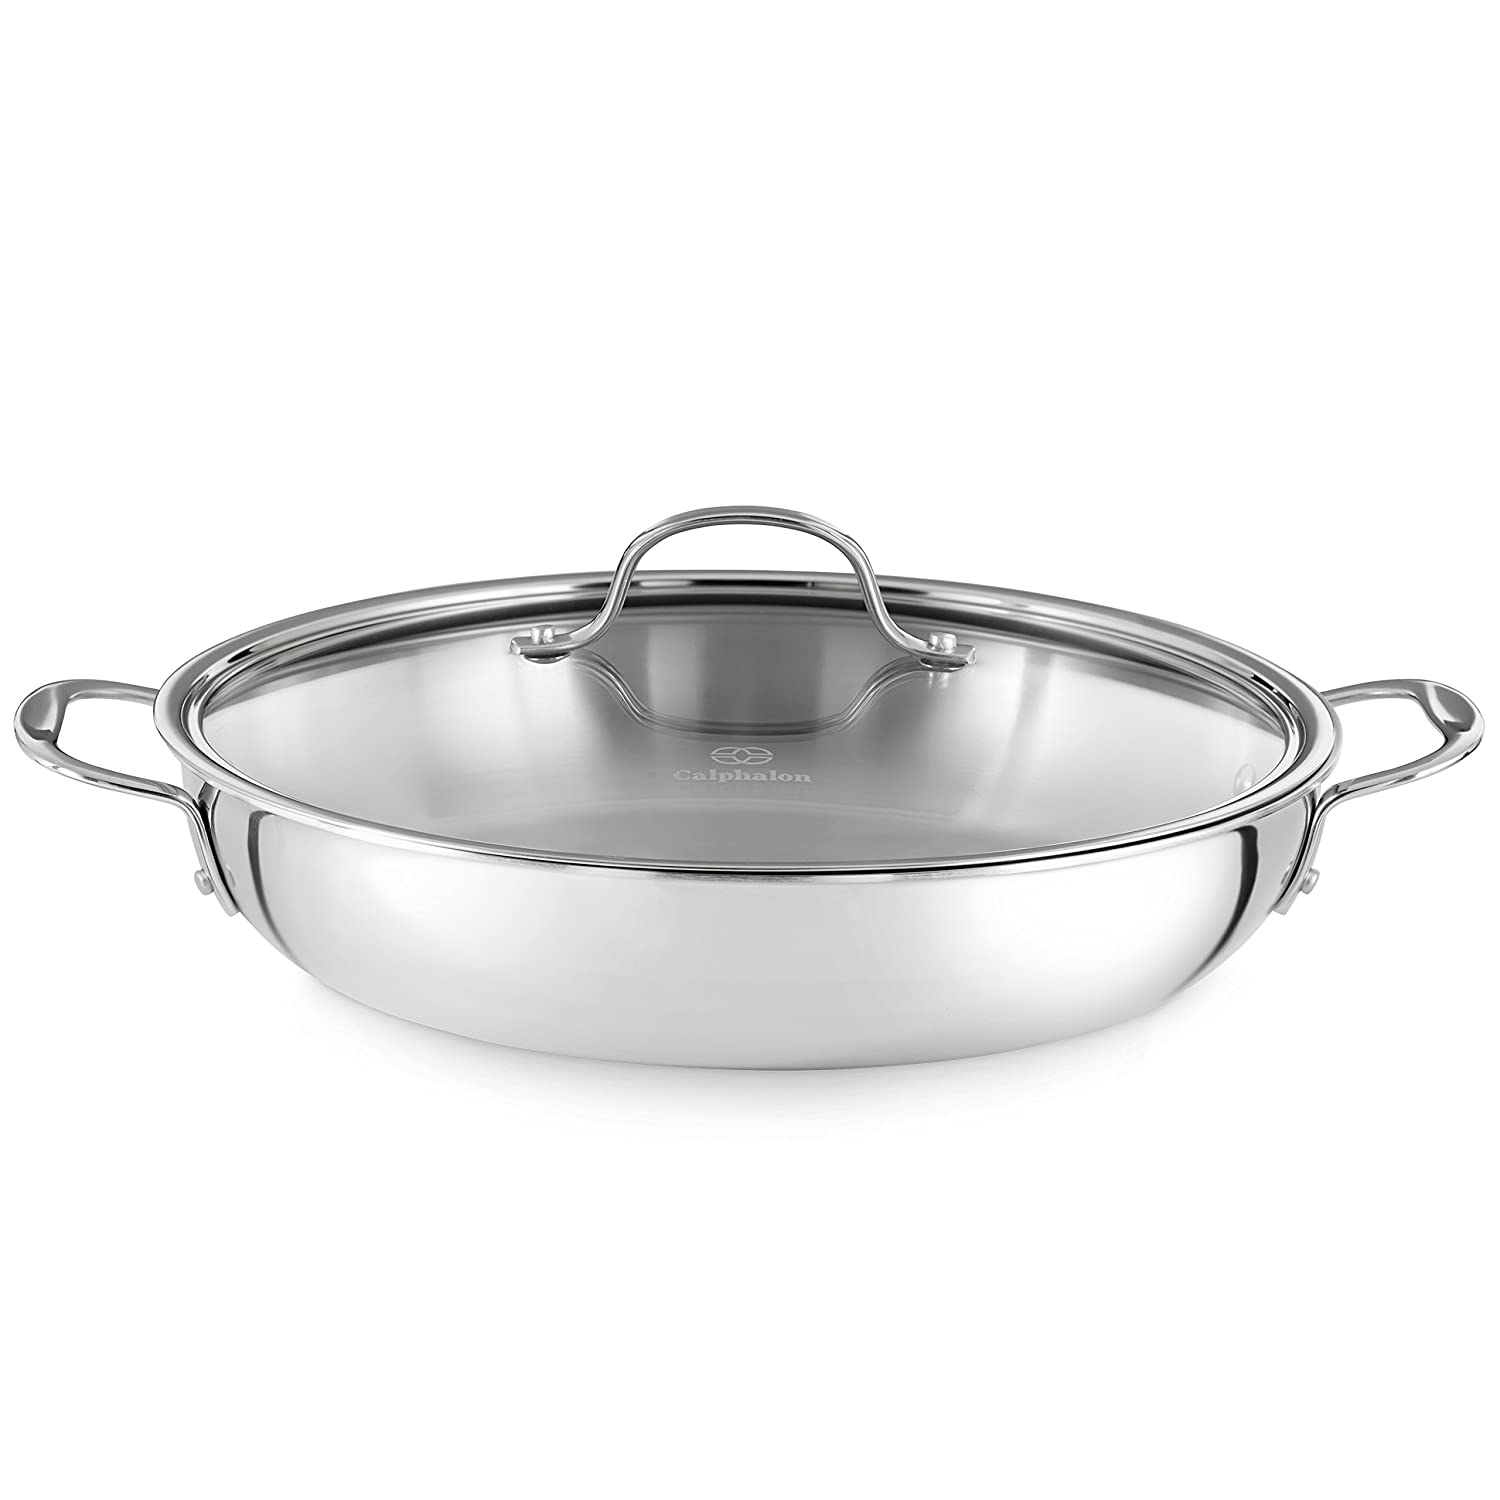 Amazoncom Calphalon Tri Ply Stainless Steel Cookware Everyday Pan